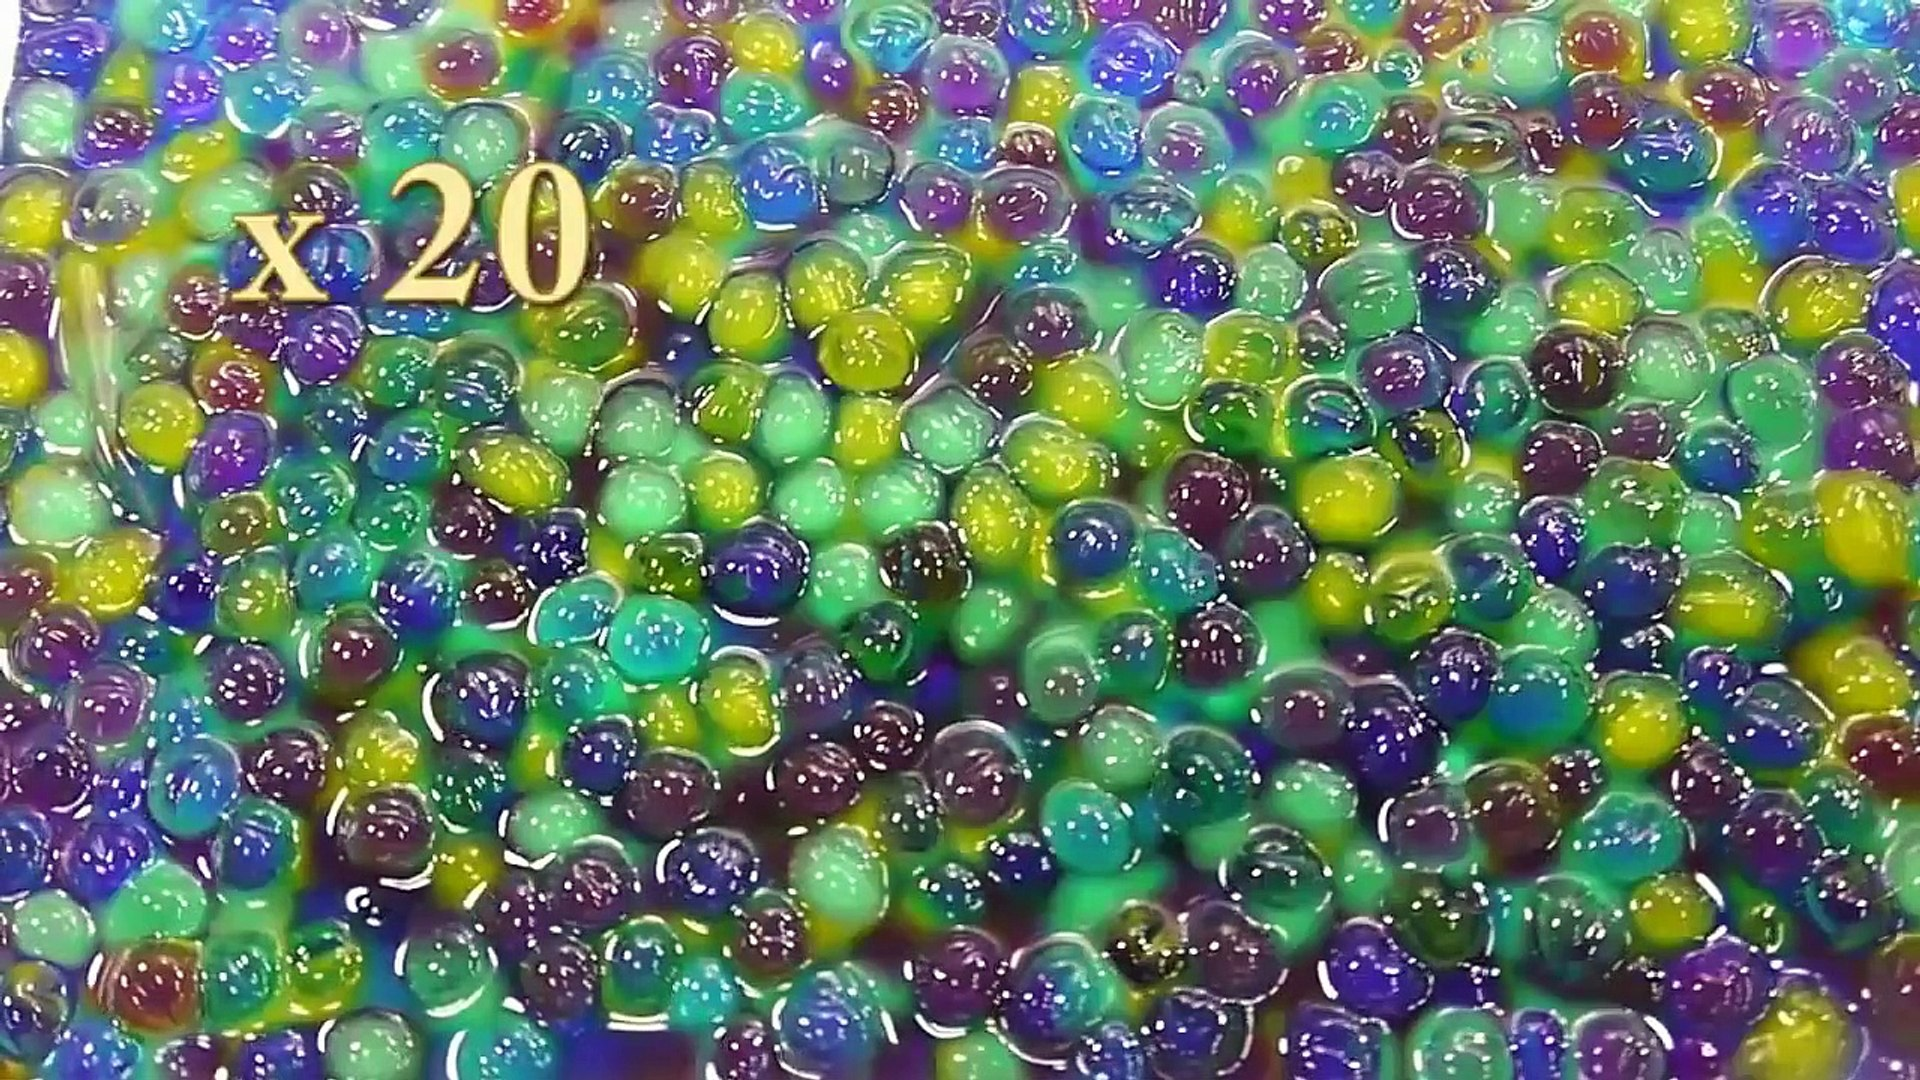 How To Make Orbeez Magic Growing Water Ball Toys Learn Colors Slime Fun Toys For Kids